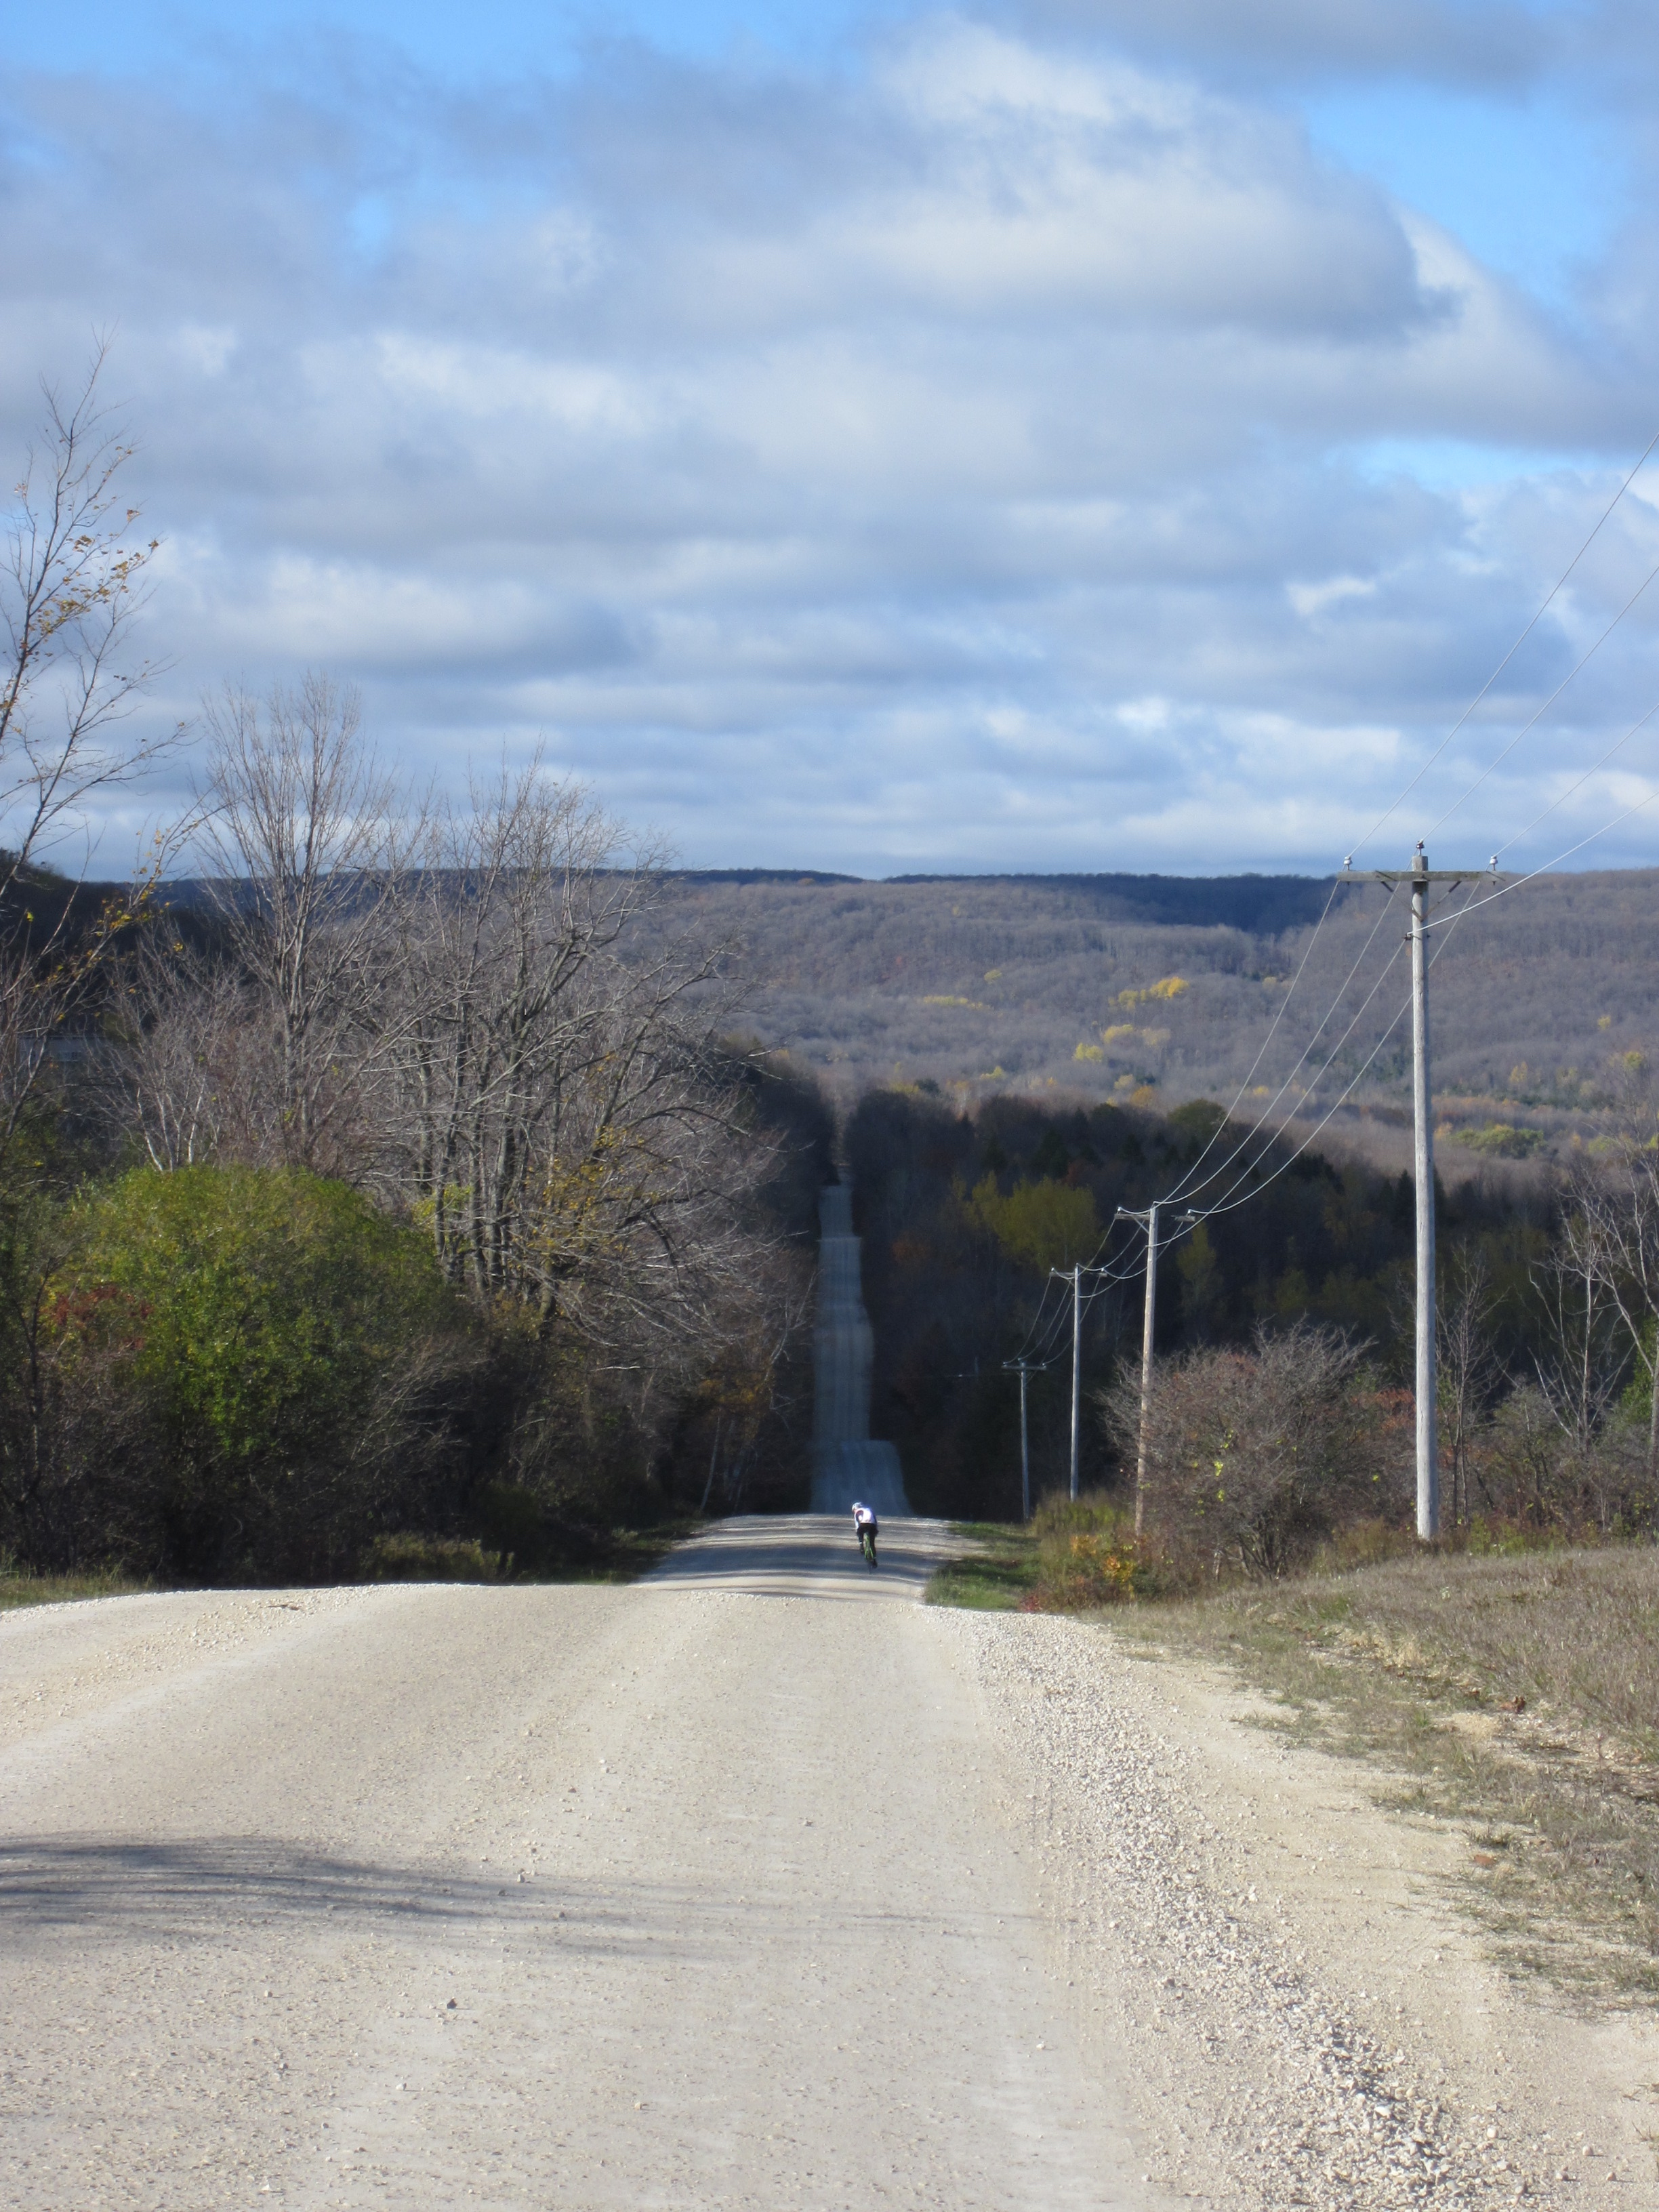 Gravel rollers heading toward Pretty River Valley - great scenic look out point